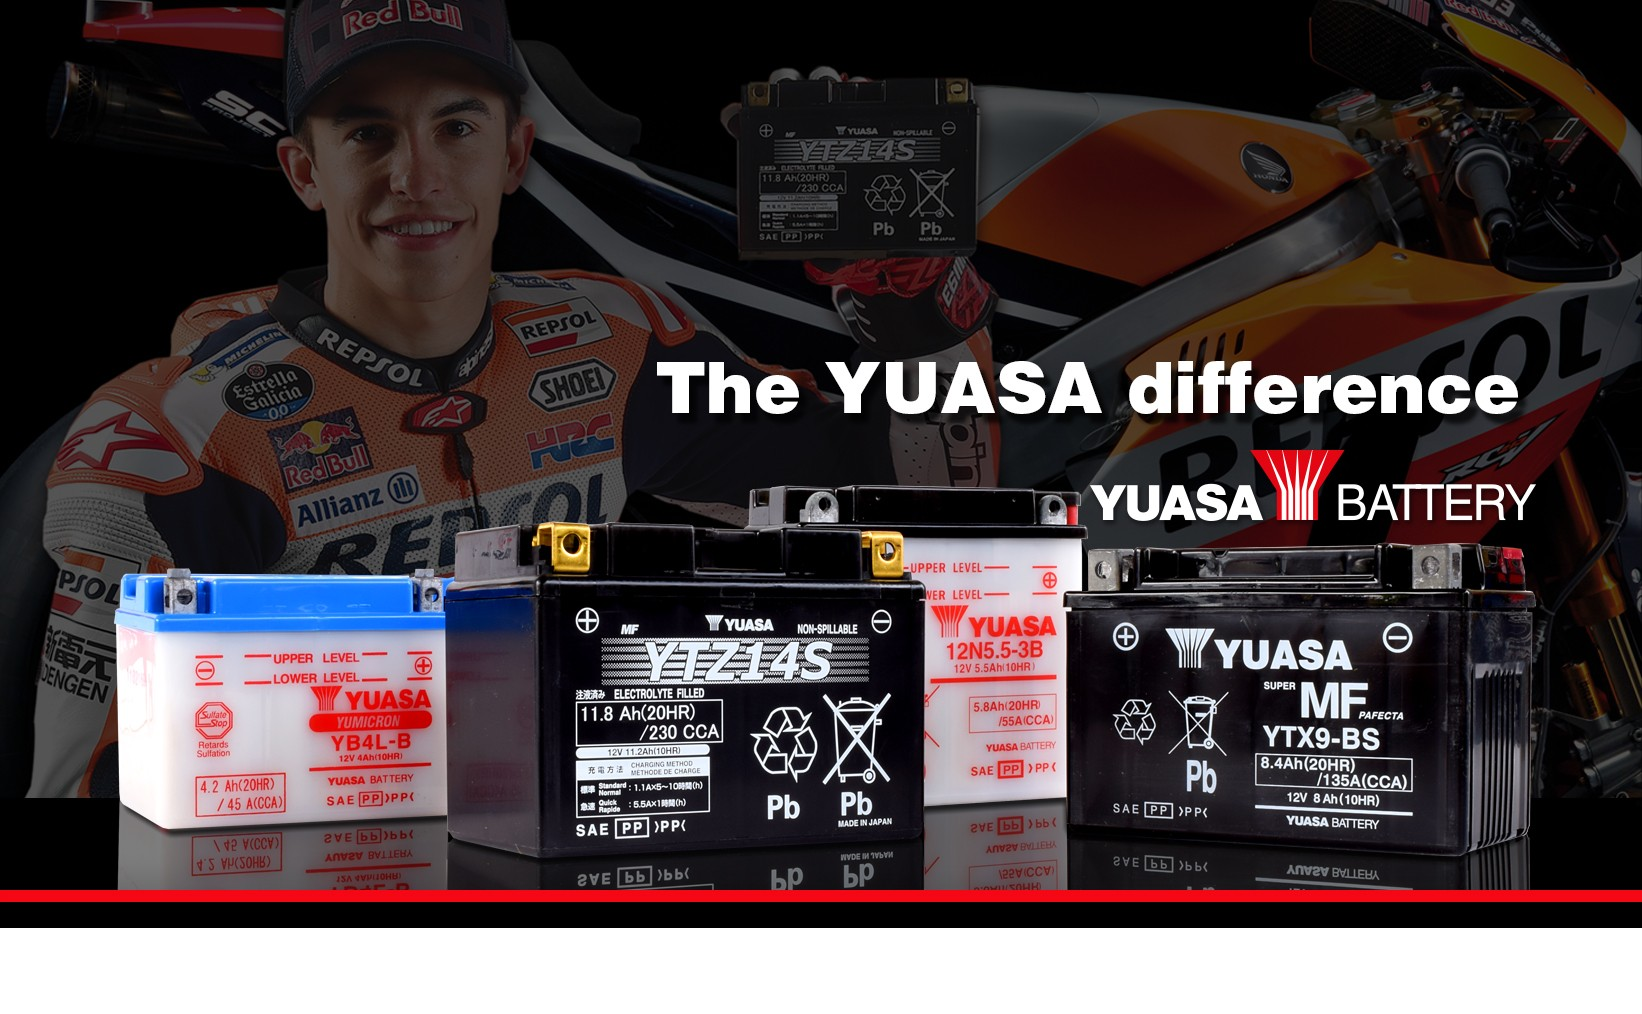 The Yuasa Difference